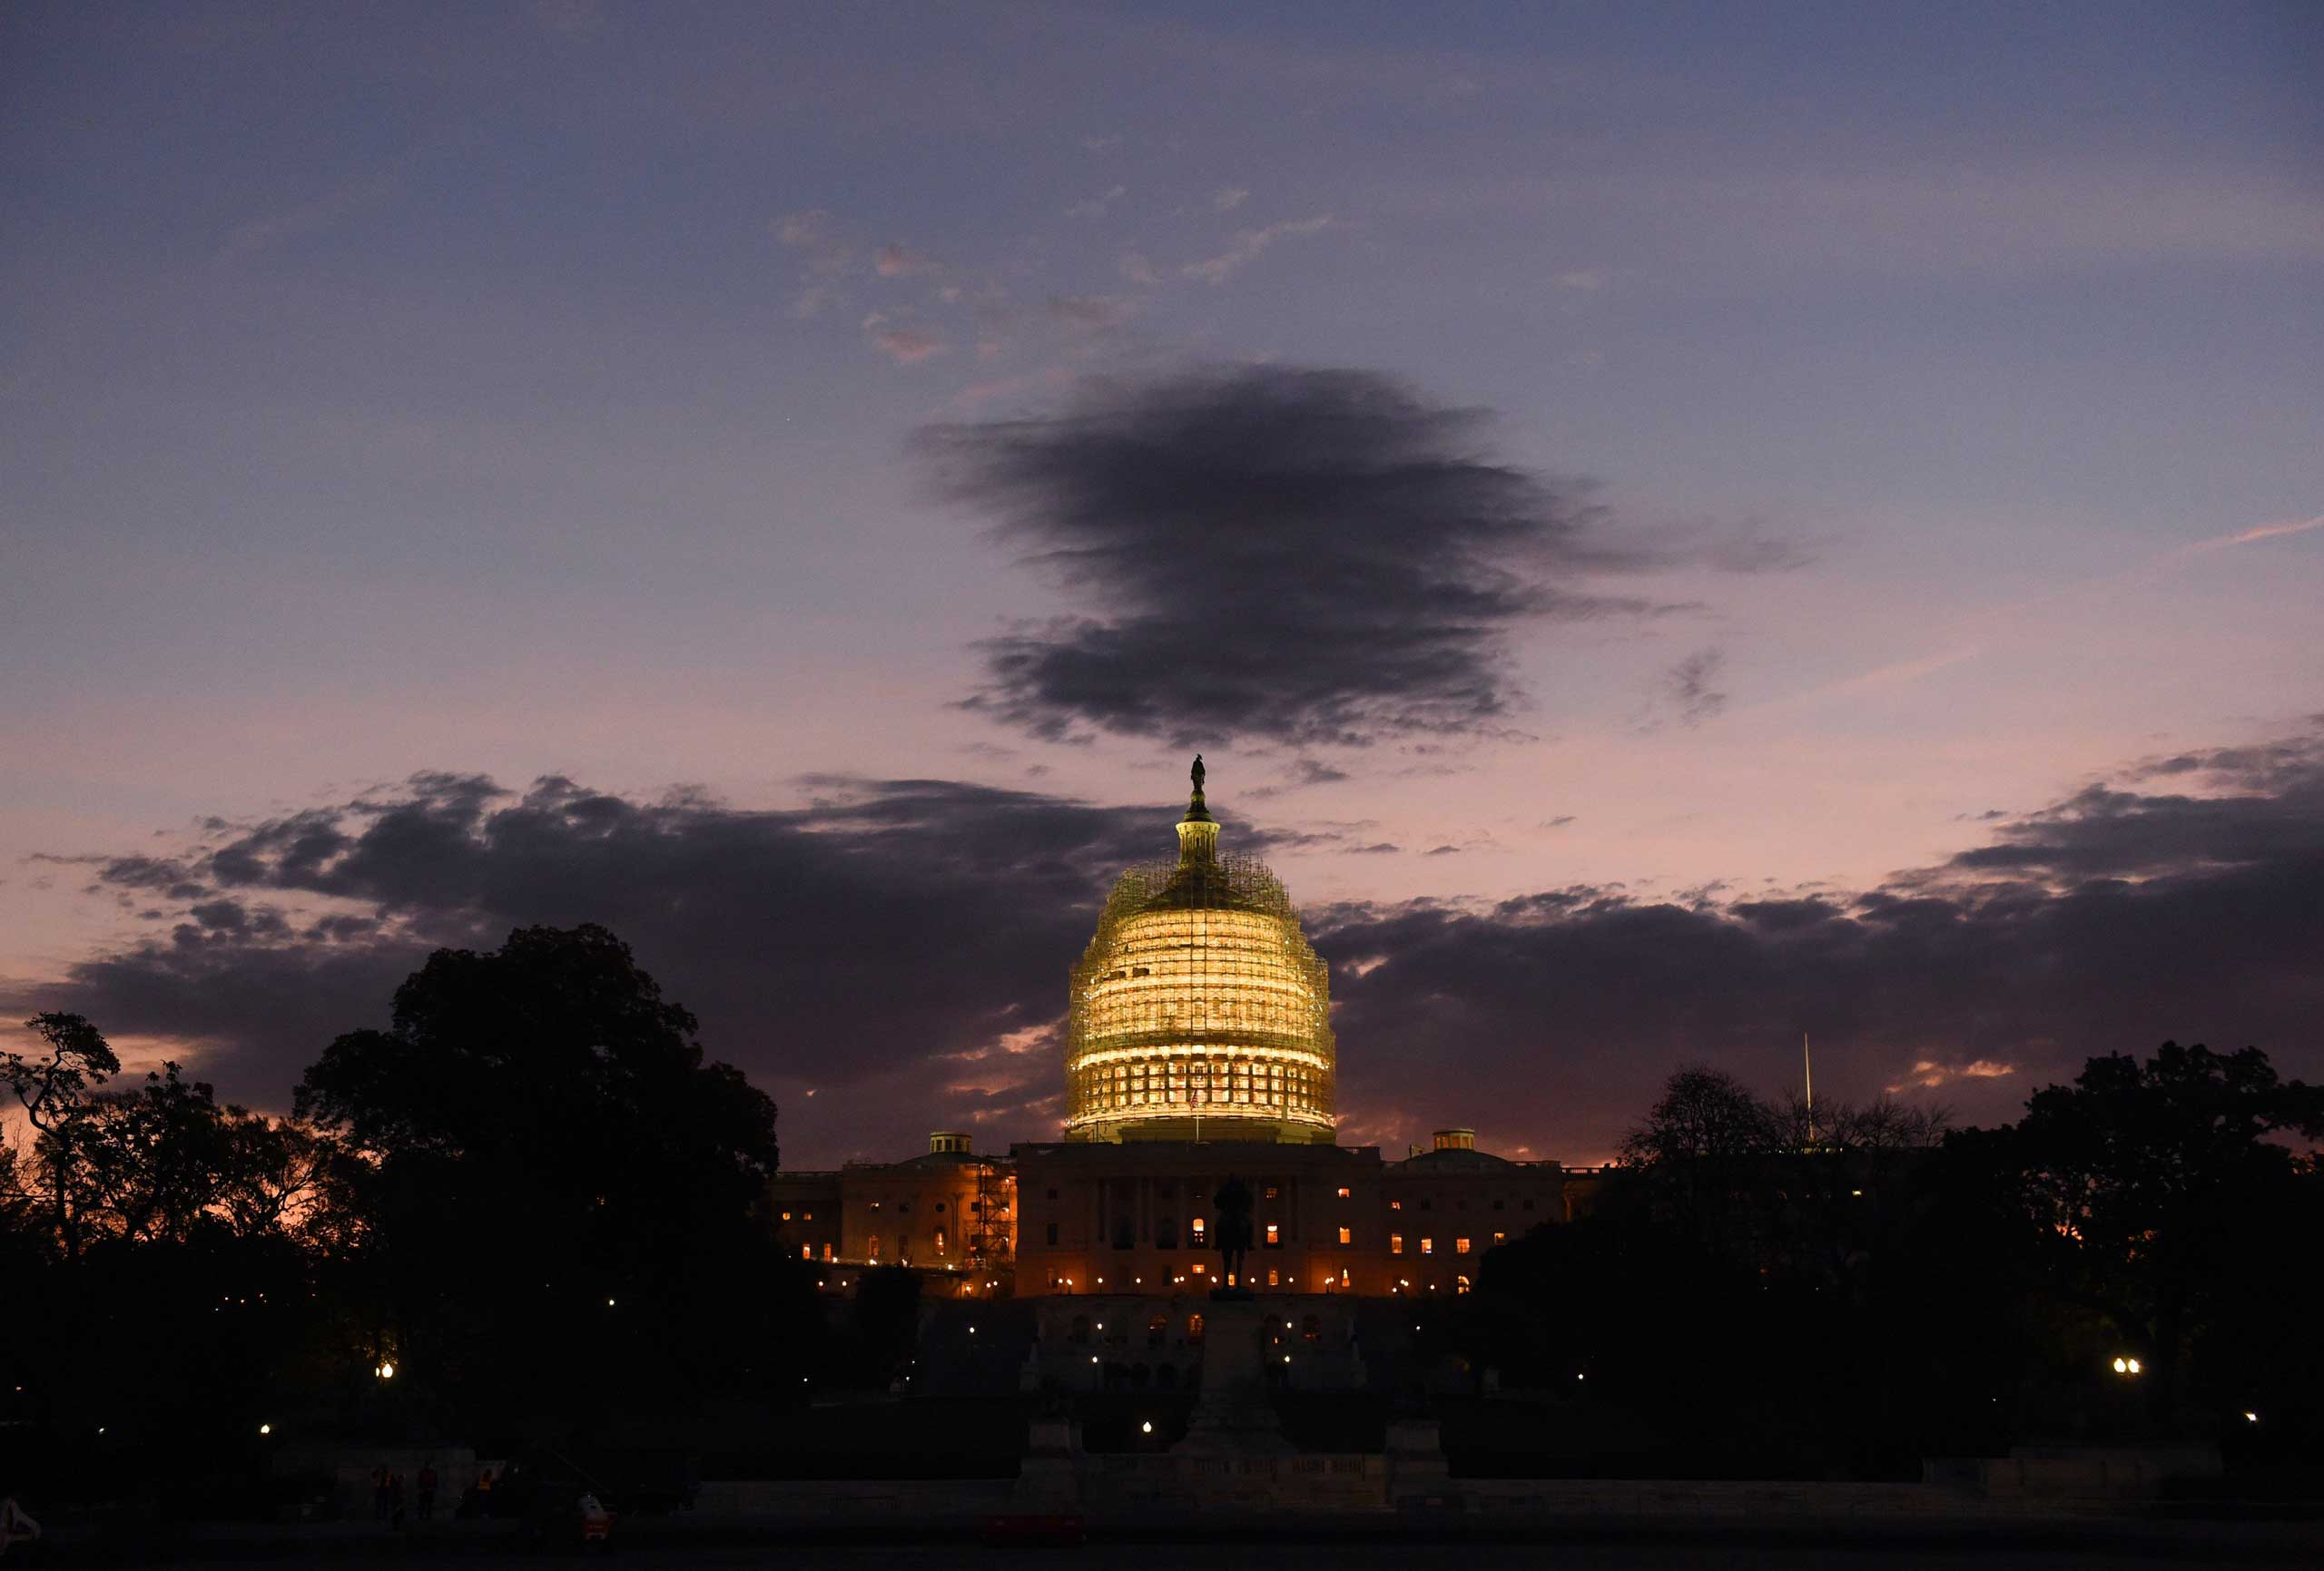 Nov. 4, 2014. The U.S. Capitol is lit up at dawn in Washington DC., while voters across the country are deciding who will occupy 36 governors' mansions and 36 Senate seats, with control of Congress hanging in the balance.